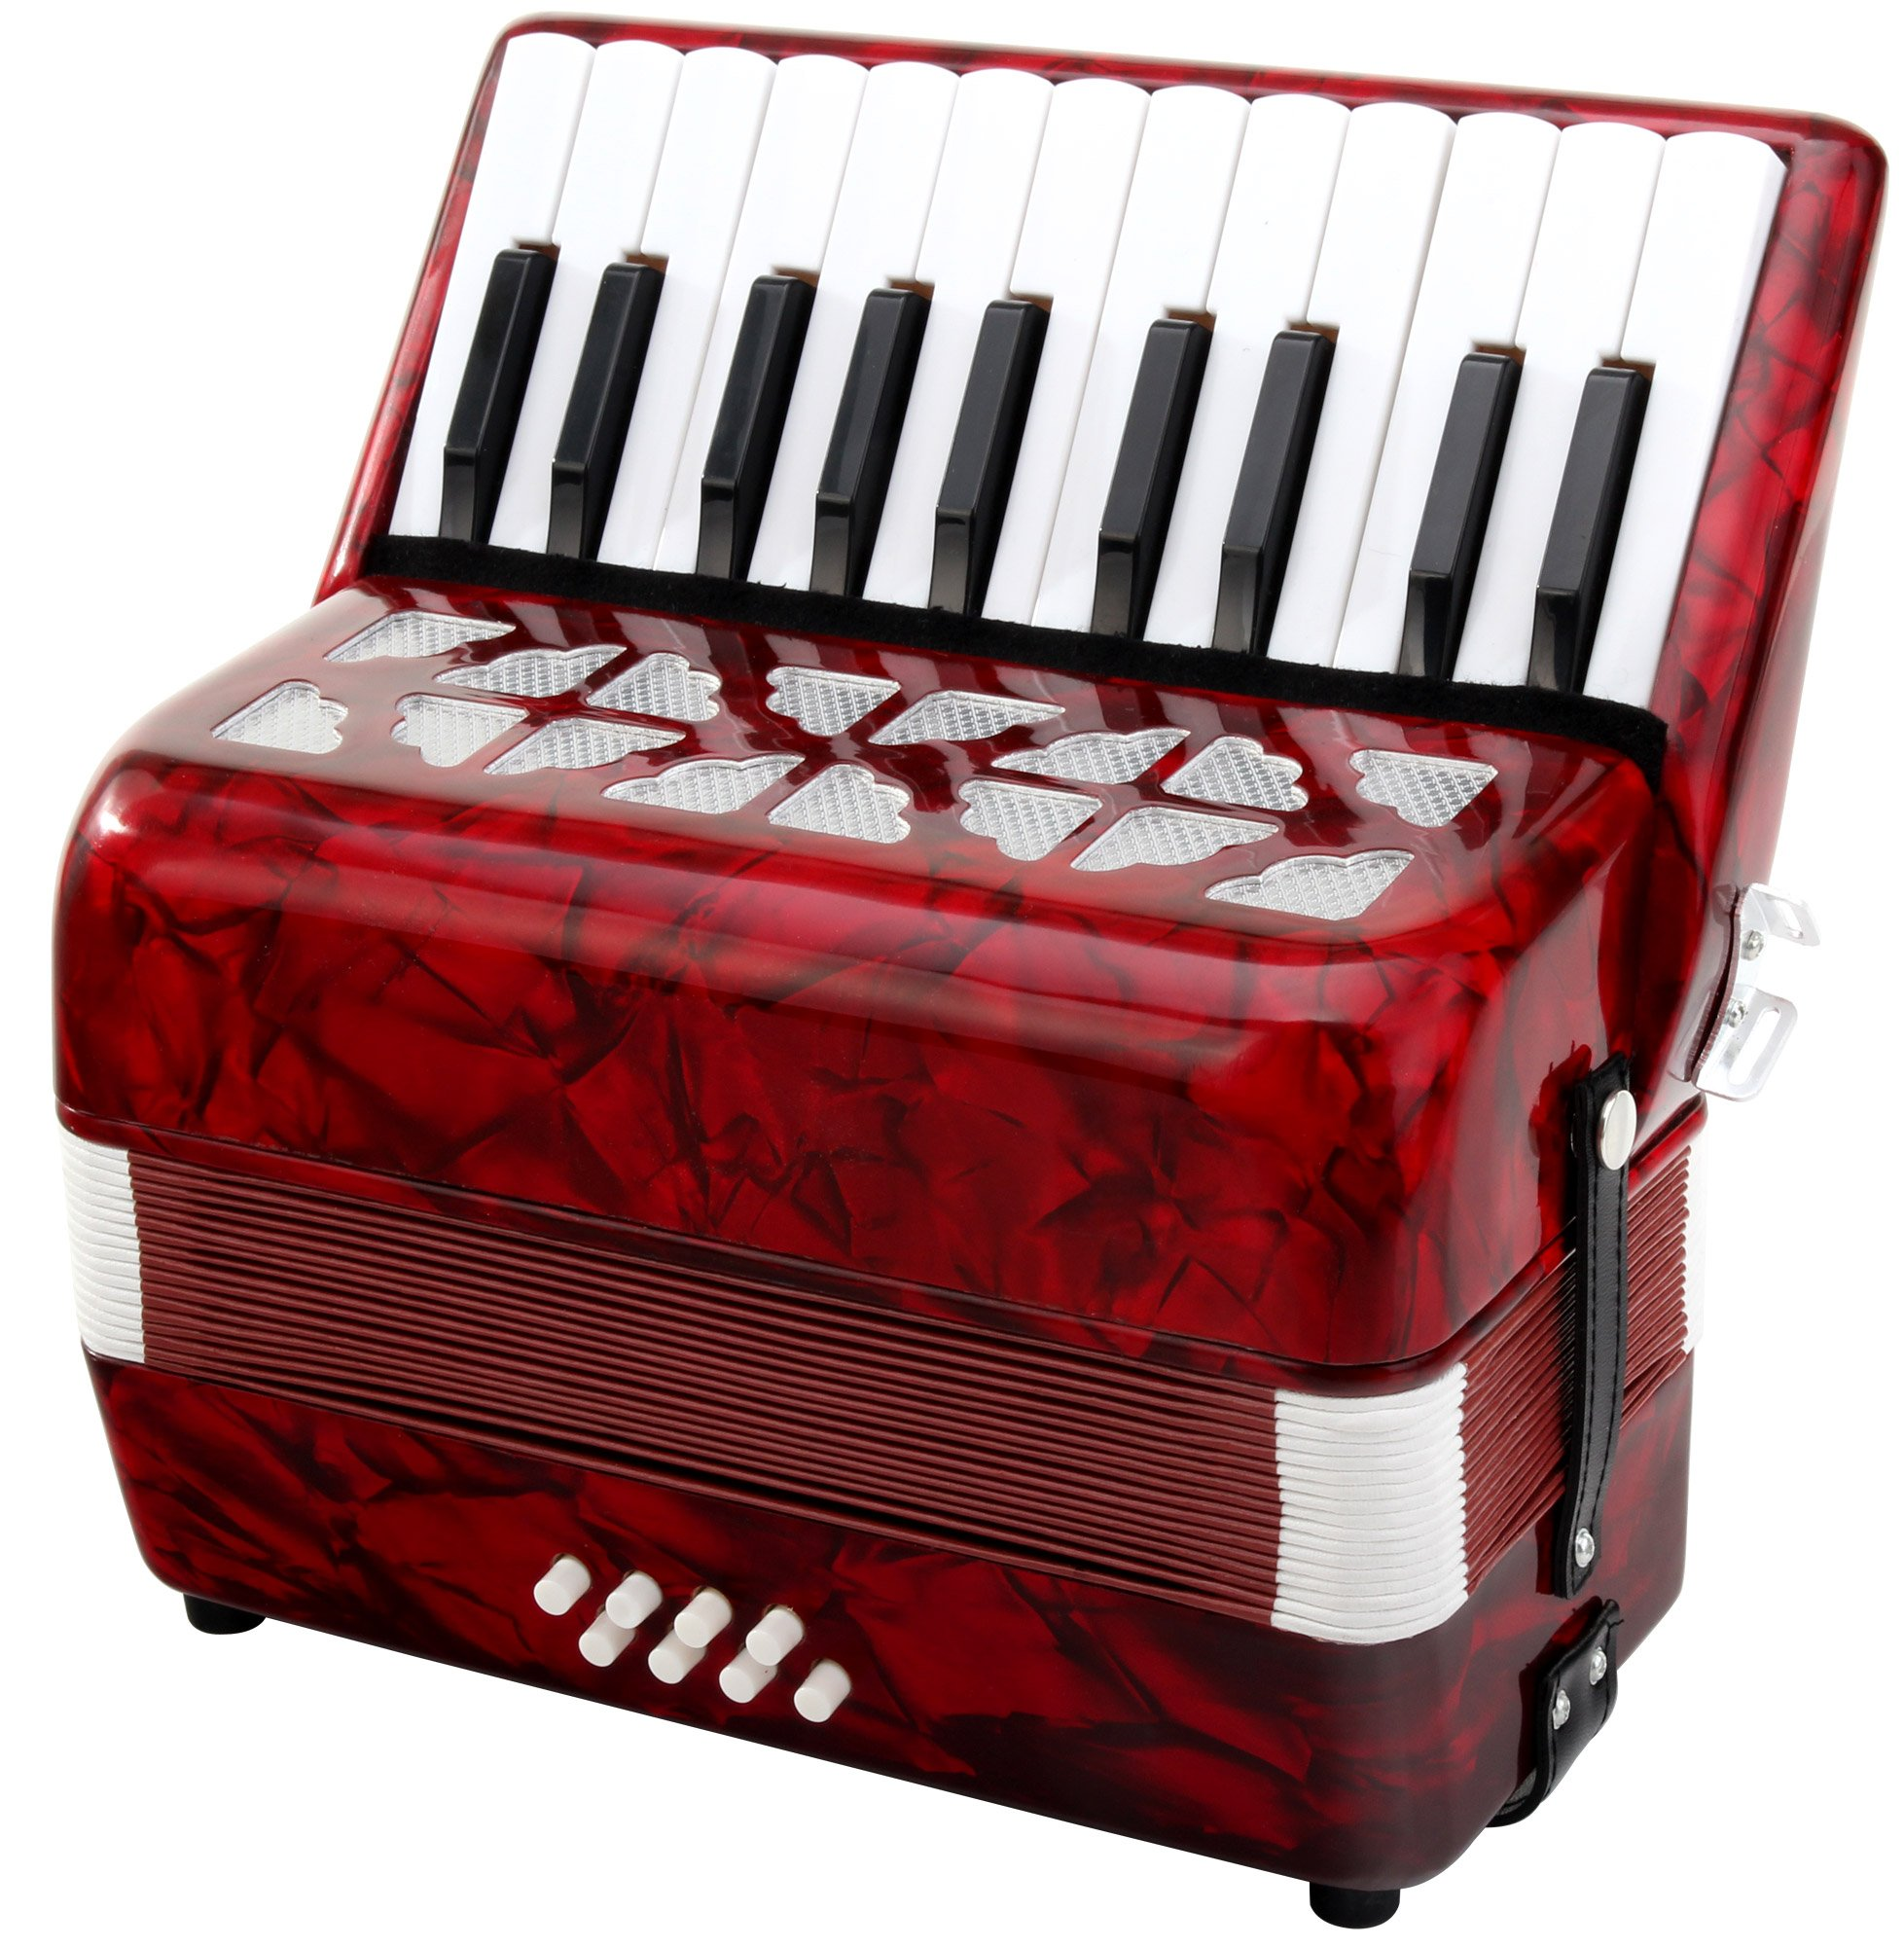 Classic Cantabile Secondo Junior 8 Bass Accordion 22 Treble Keys Eight Bass Keys with Strap and Gig Bag Red by Classic Cantabile (Image #1)